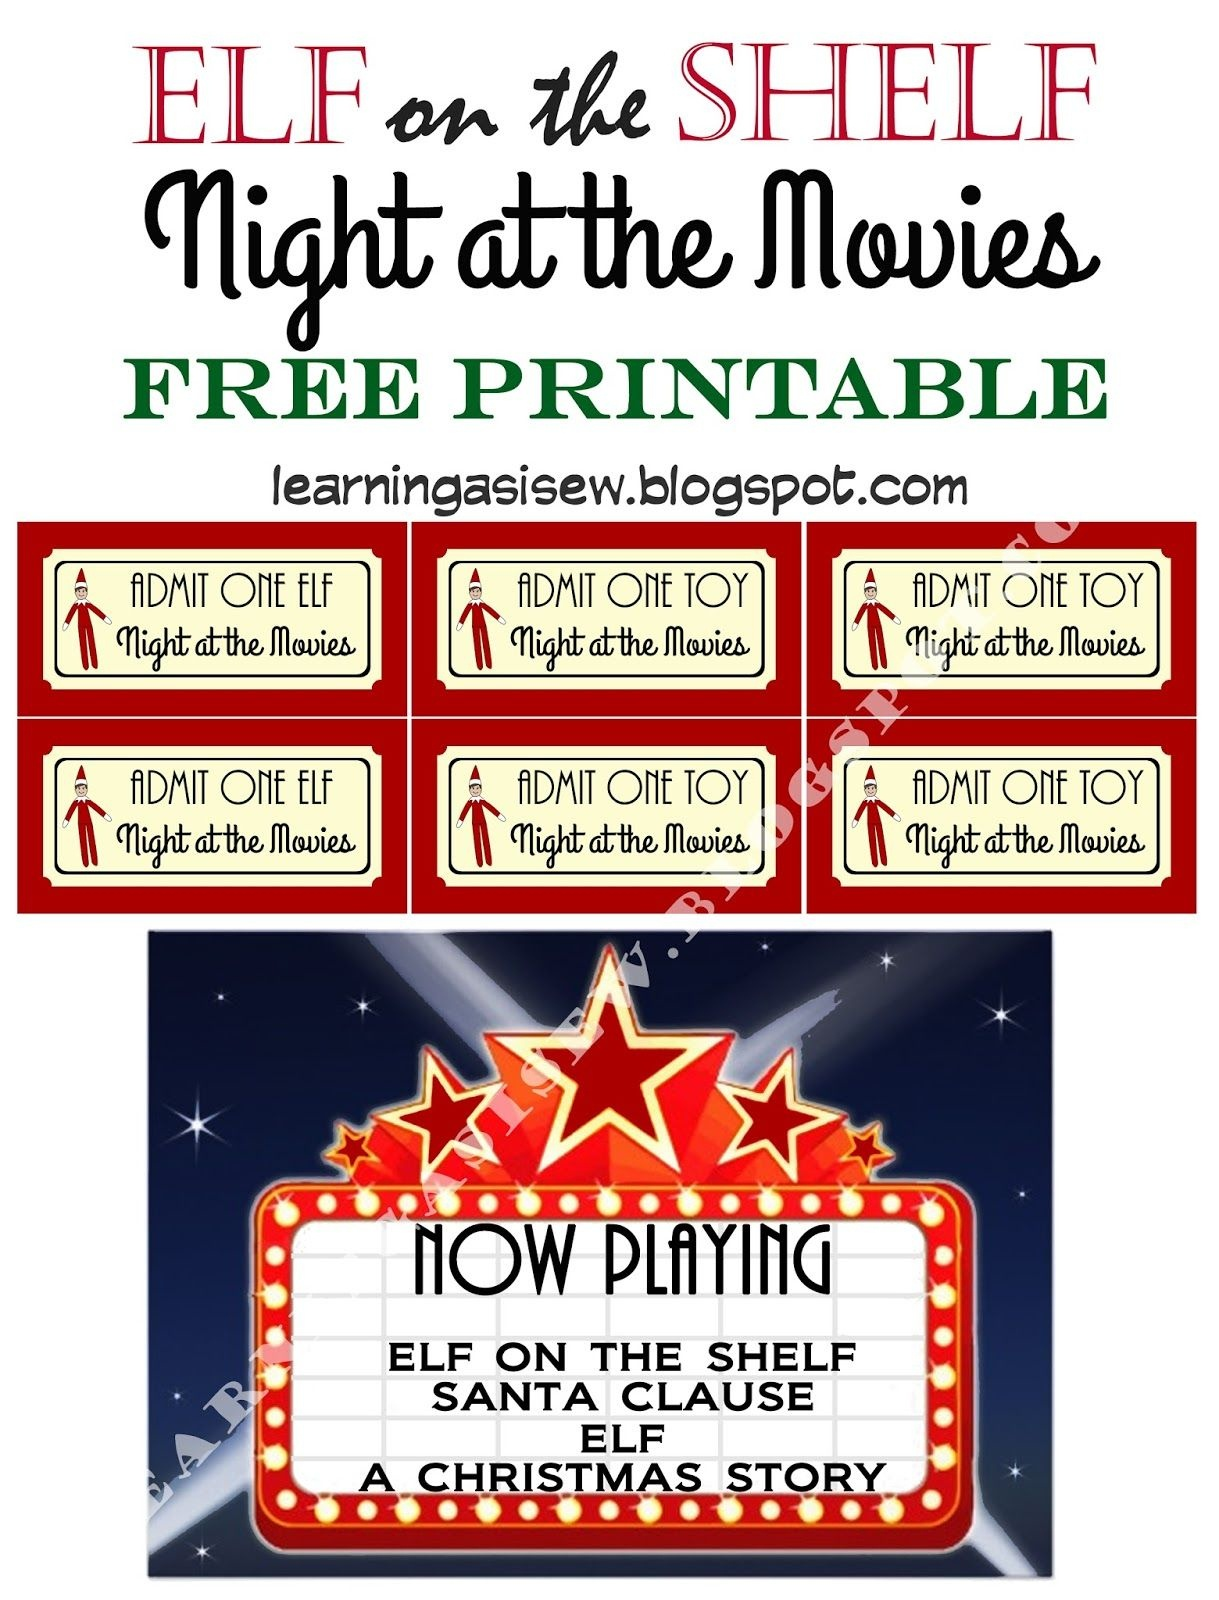 Elf On The Shelf Free Printable - Night At The Movies, Printable - Elf On The Shelf Printable Props Free